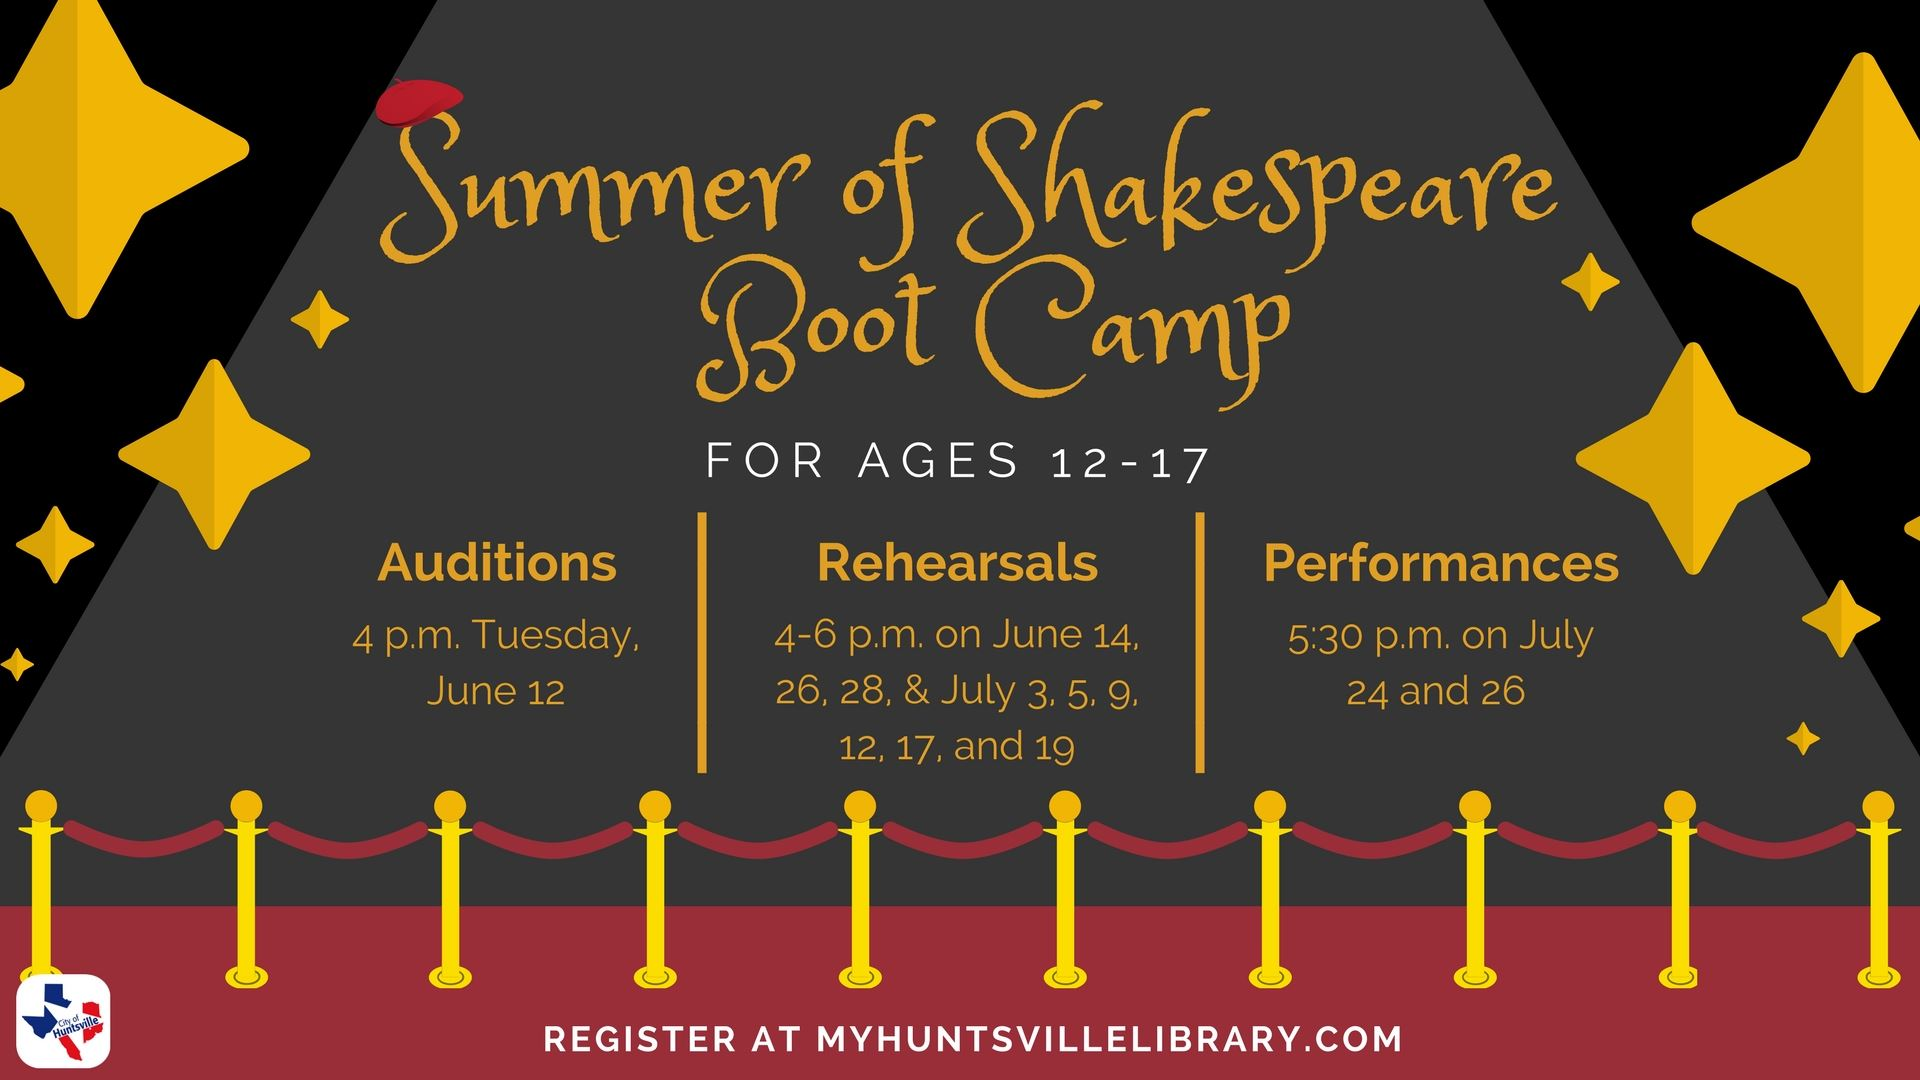 Summer of Shakespeare Bootcamp